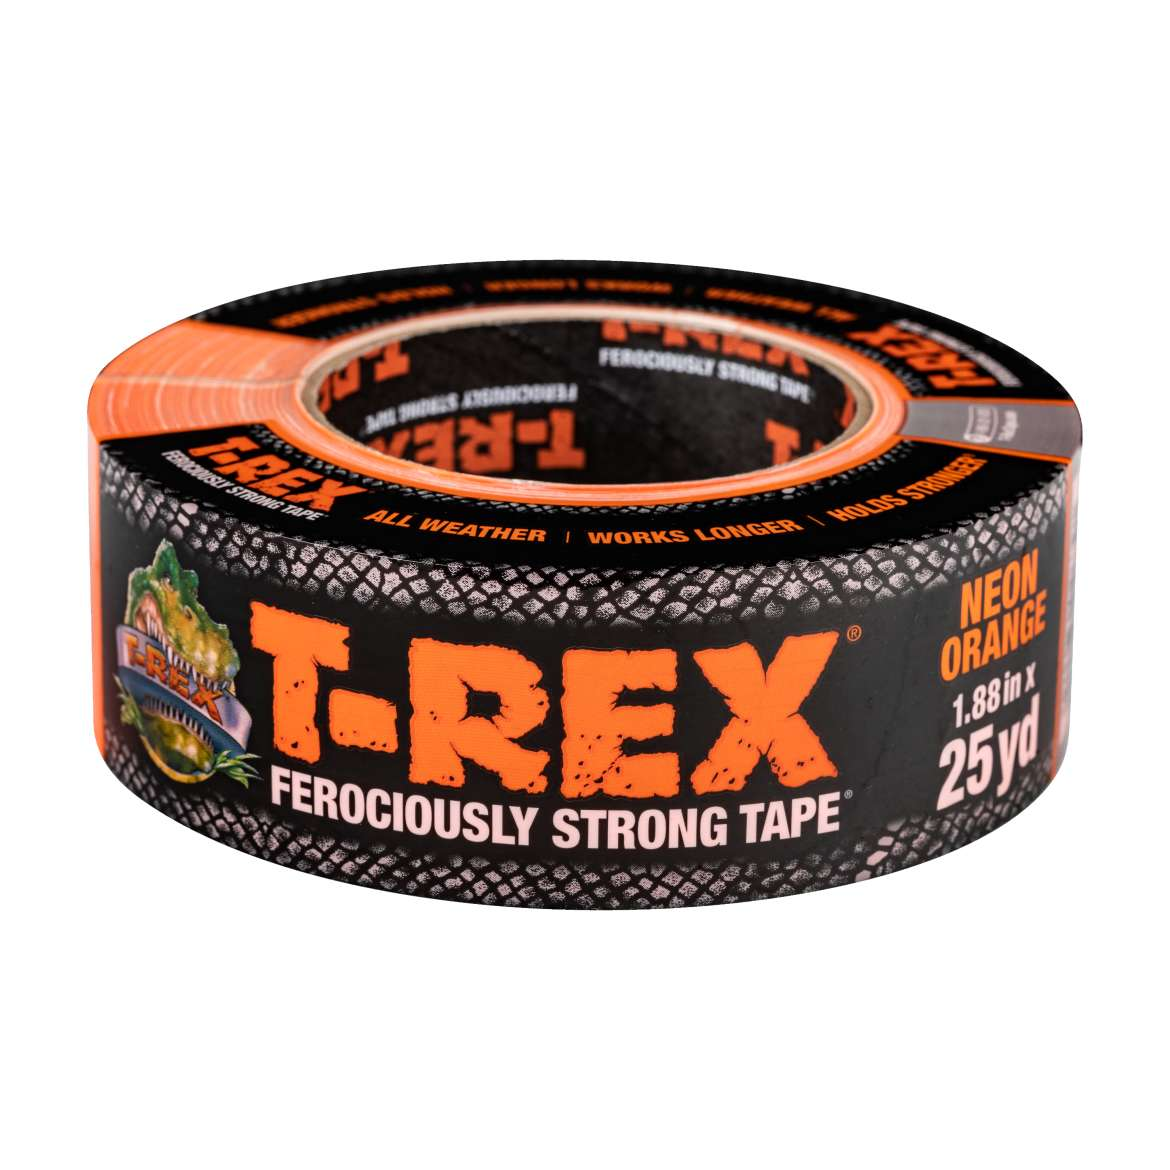 T-Rex® Tape - Neon Orange, 1.88 in. x 25 yd.